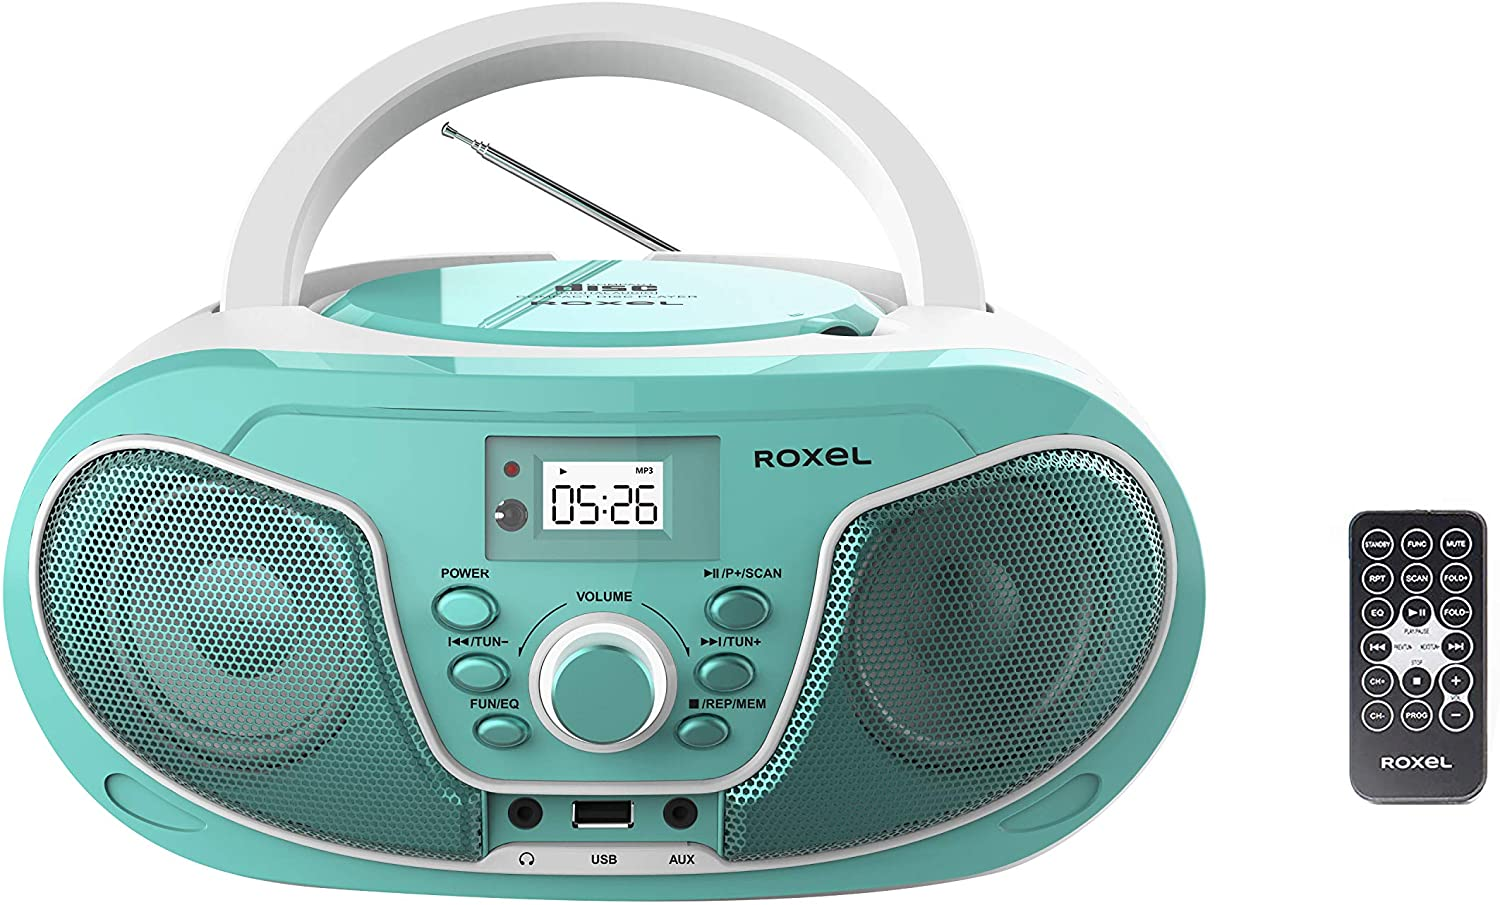 Roxel RCD-S70BT Portable Boombox CD Player with Bluetooth, Remote Control, FM Radio, USB MP3 Playback, 3.5mm AUX Input, Headphone Jack, LED Display (Teal)